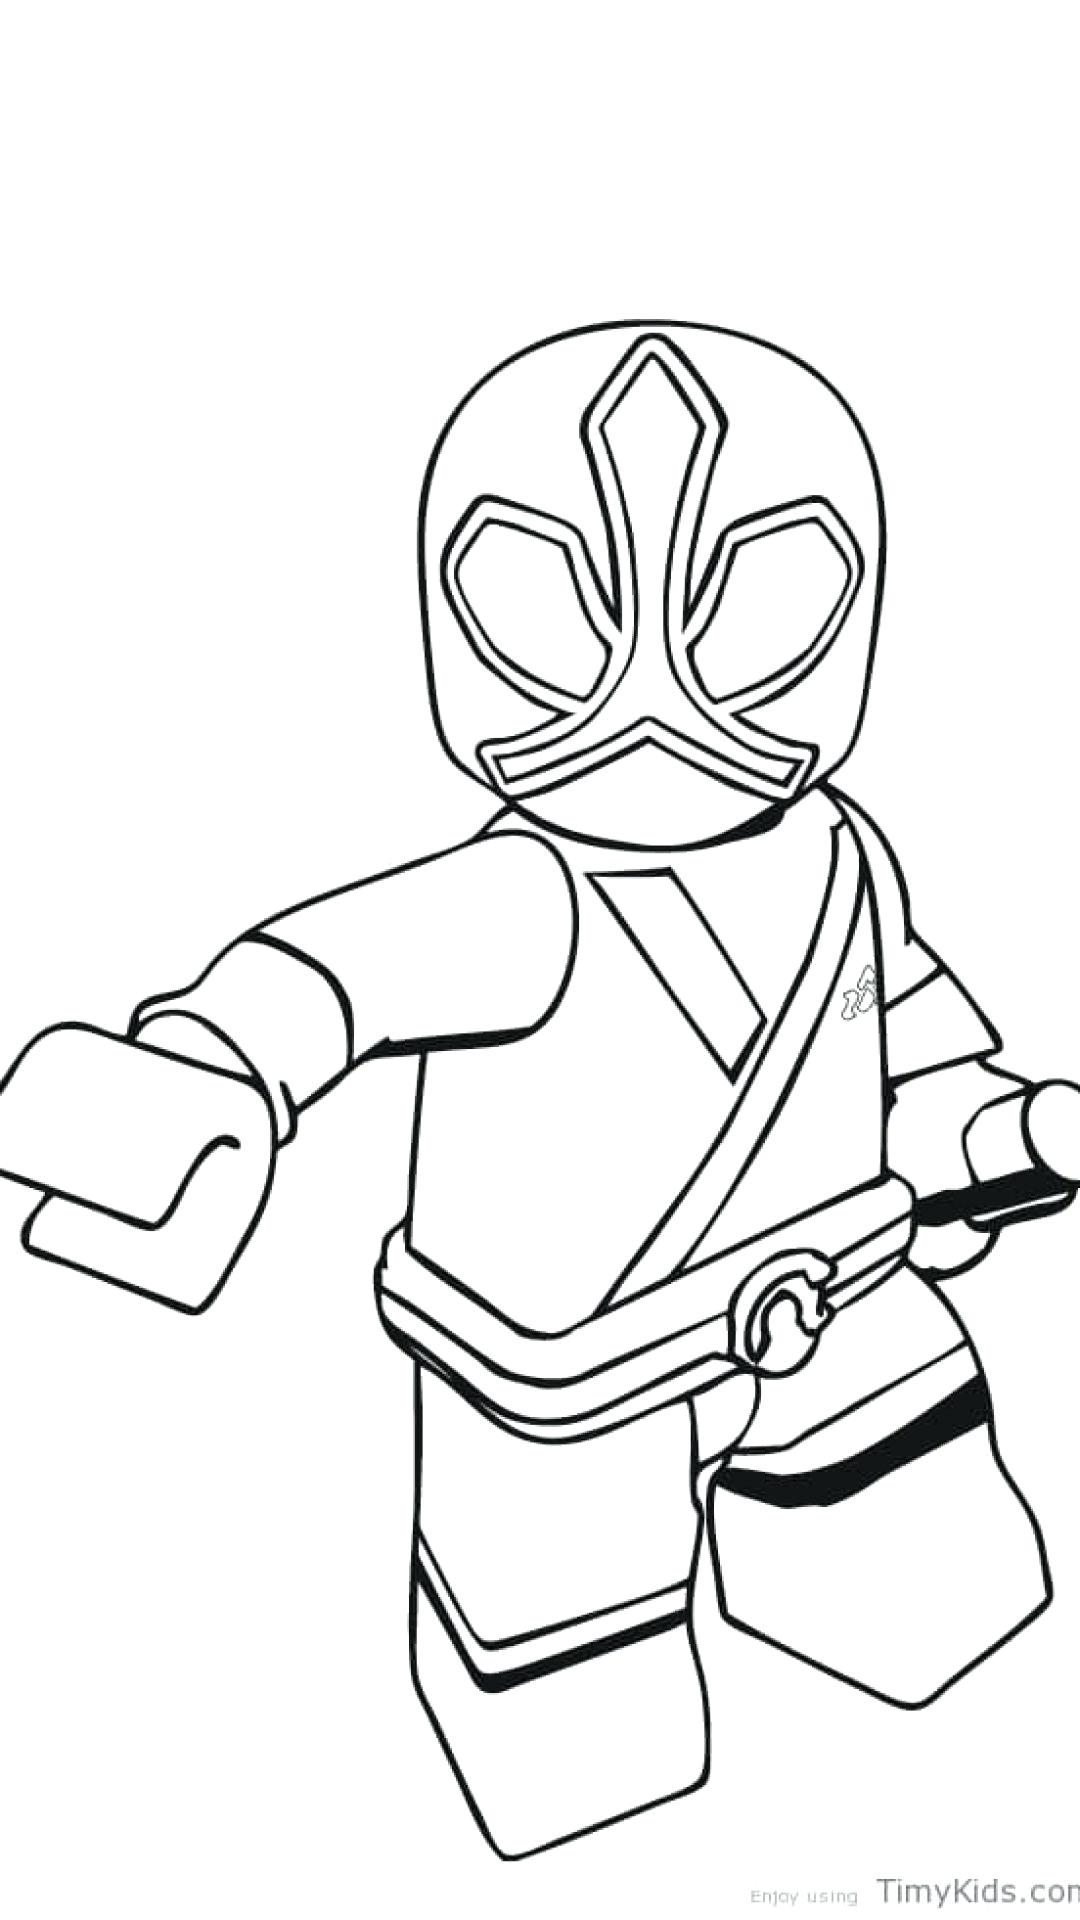 1080x1920 Coloring Power Ranger Printable Coloring Pages